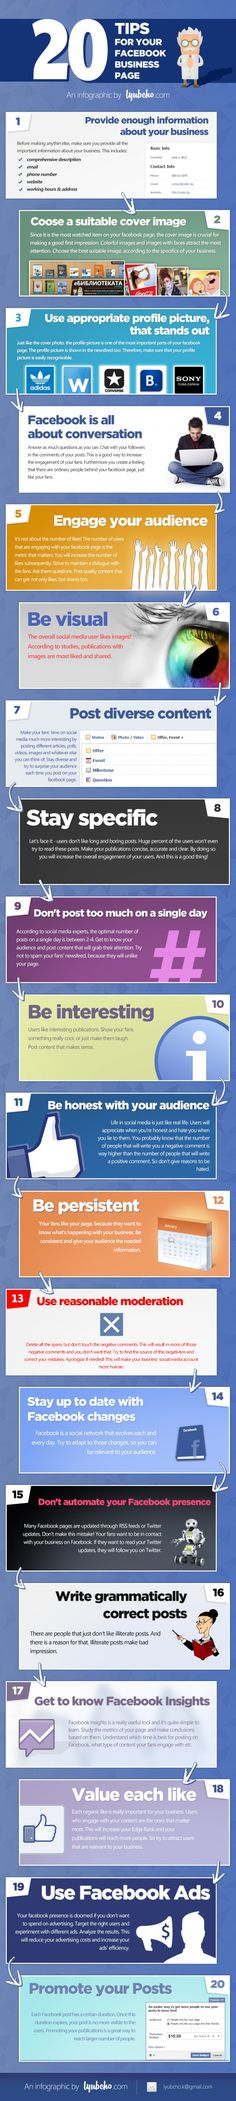 20 #Tips for your #Facebook Business Page